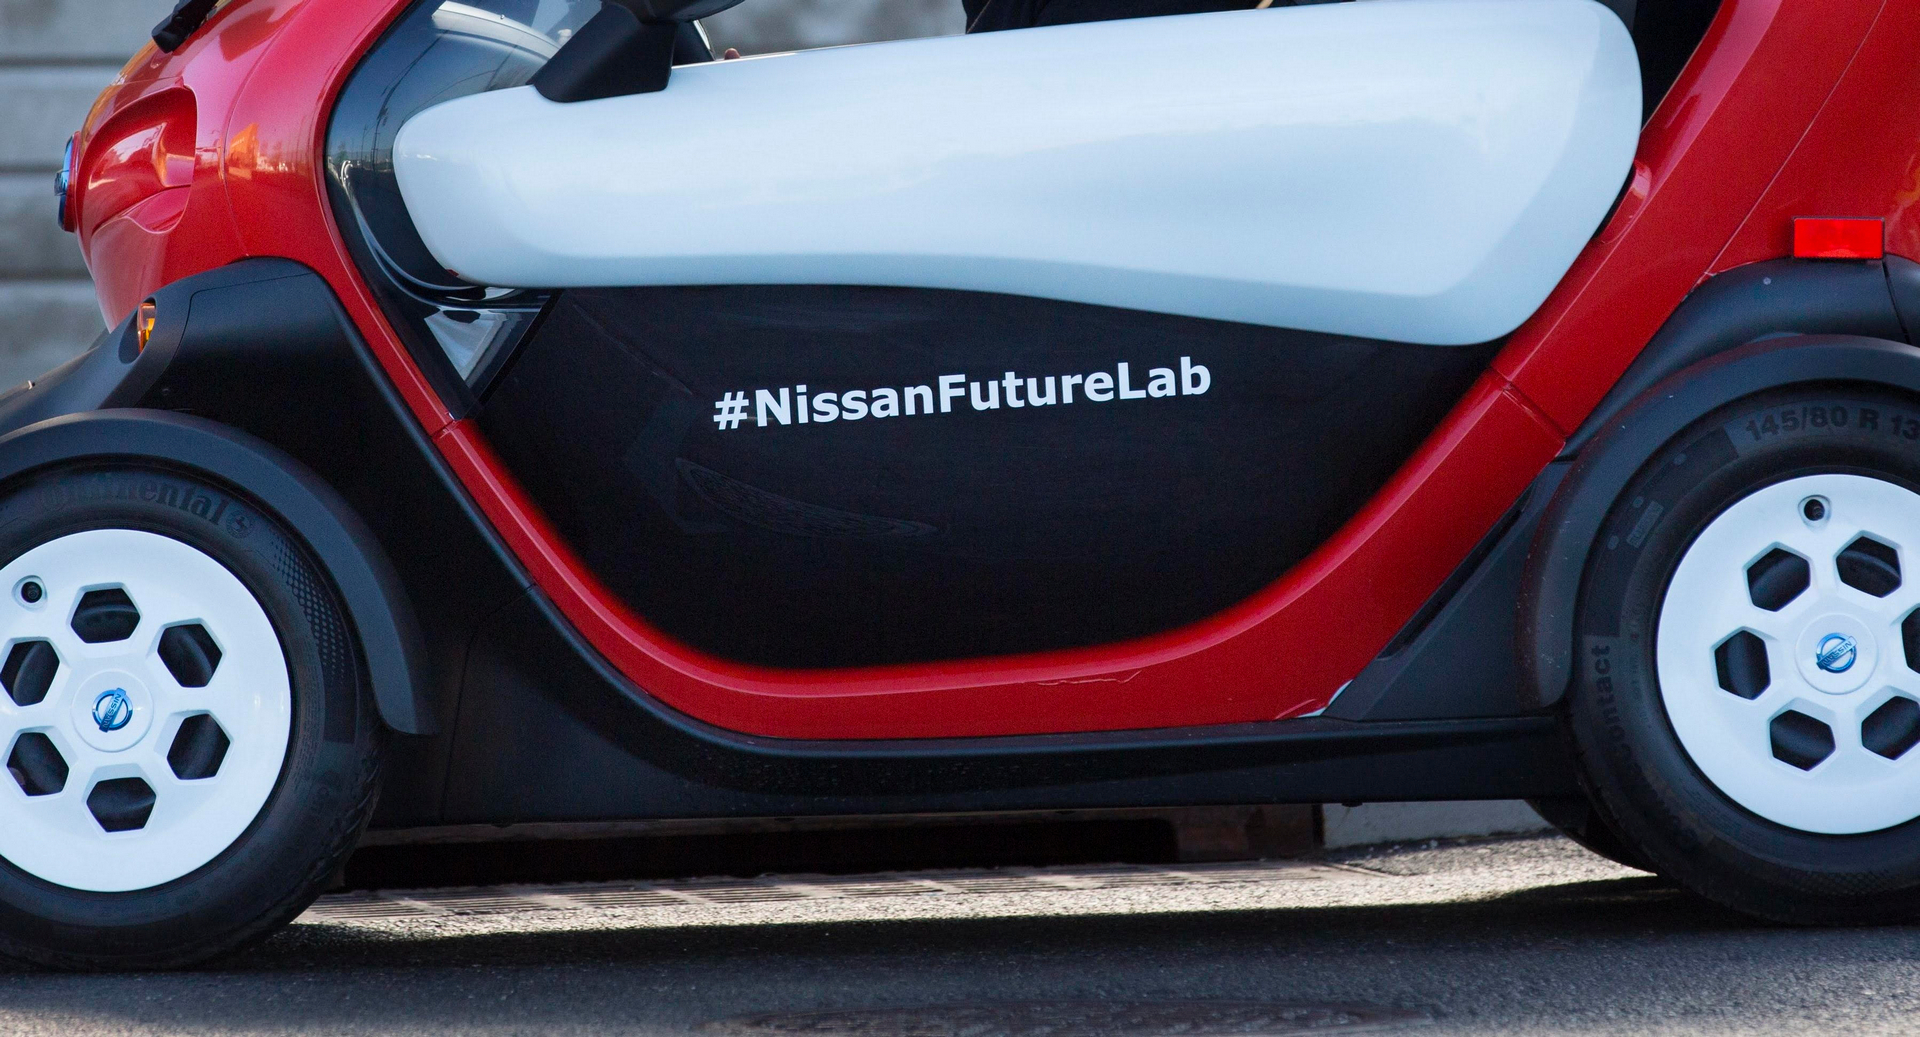 "TRAVERSE CITY, Mich. Ð Nissan is conducting a series of real-world experiments and trials to bring future mobility scenarios to life through several ""Living Labs"" underway at Nissan Future Lab. The ""Living Lab"" research provides user data to help Nissan anticipate and evolve to meet future transportation needs © Nissan Motor Co., Ltd."